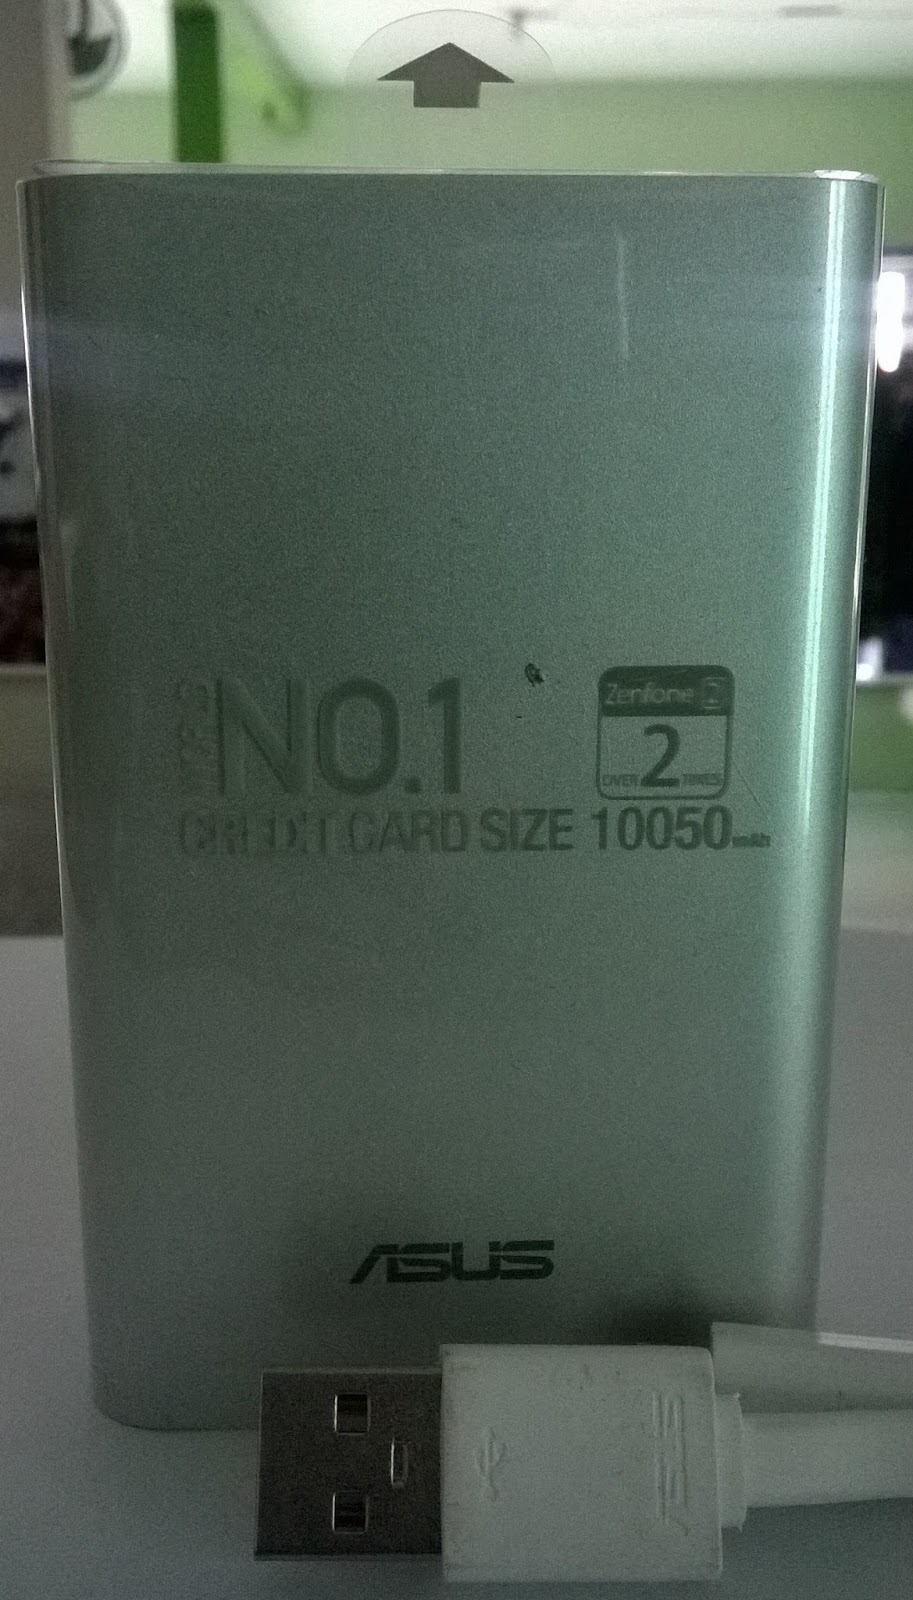 NO. 1 Credit Card Size 10.050mAh